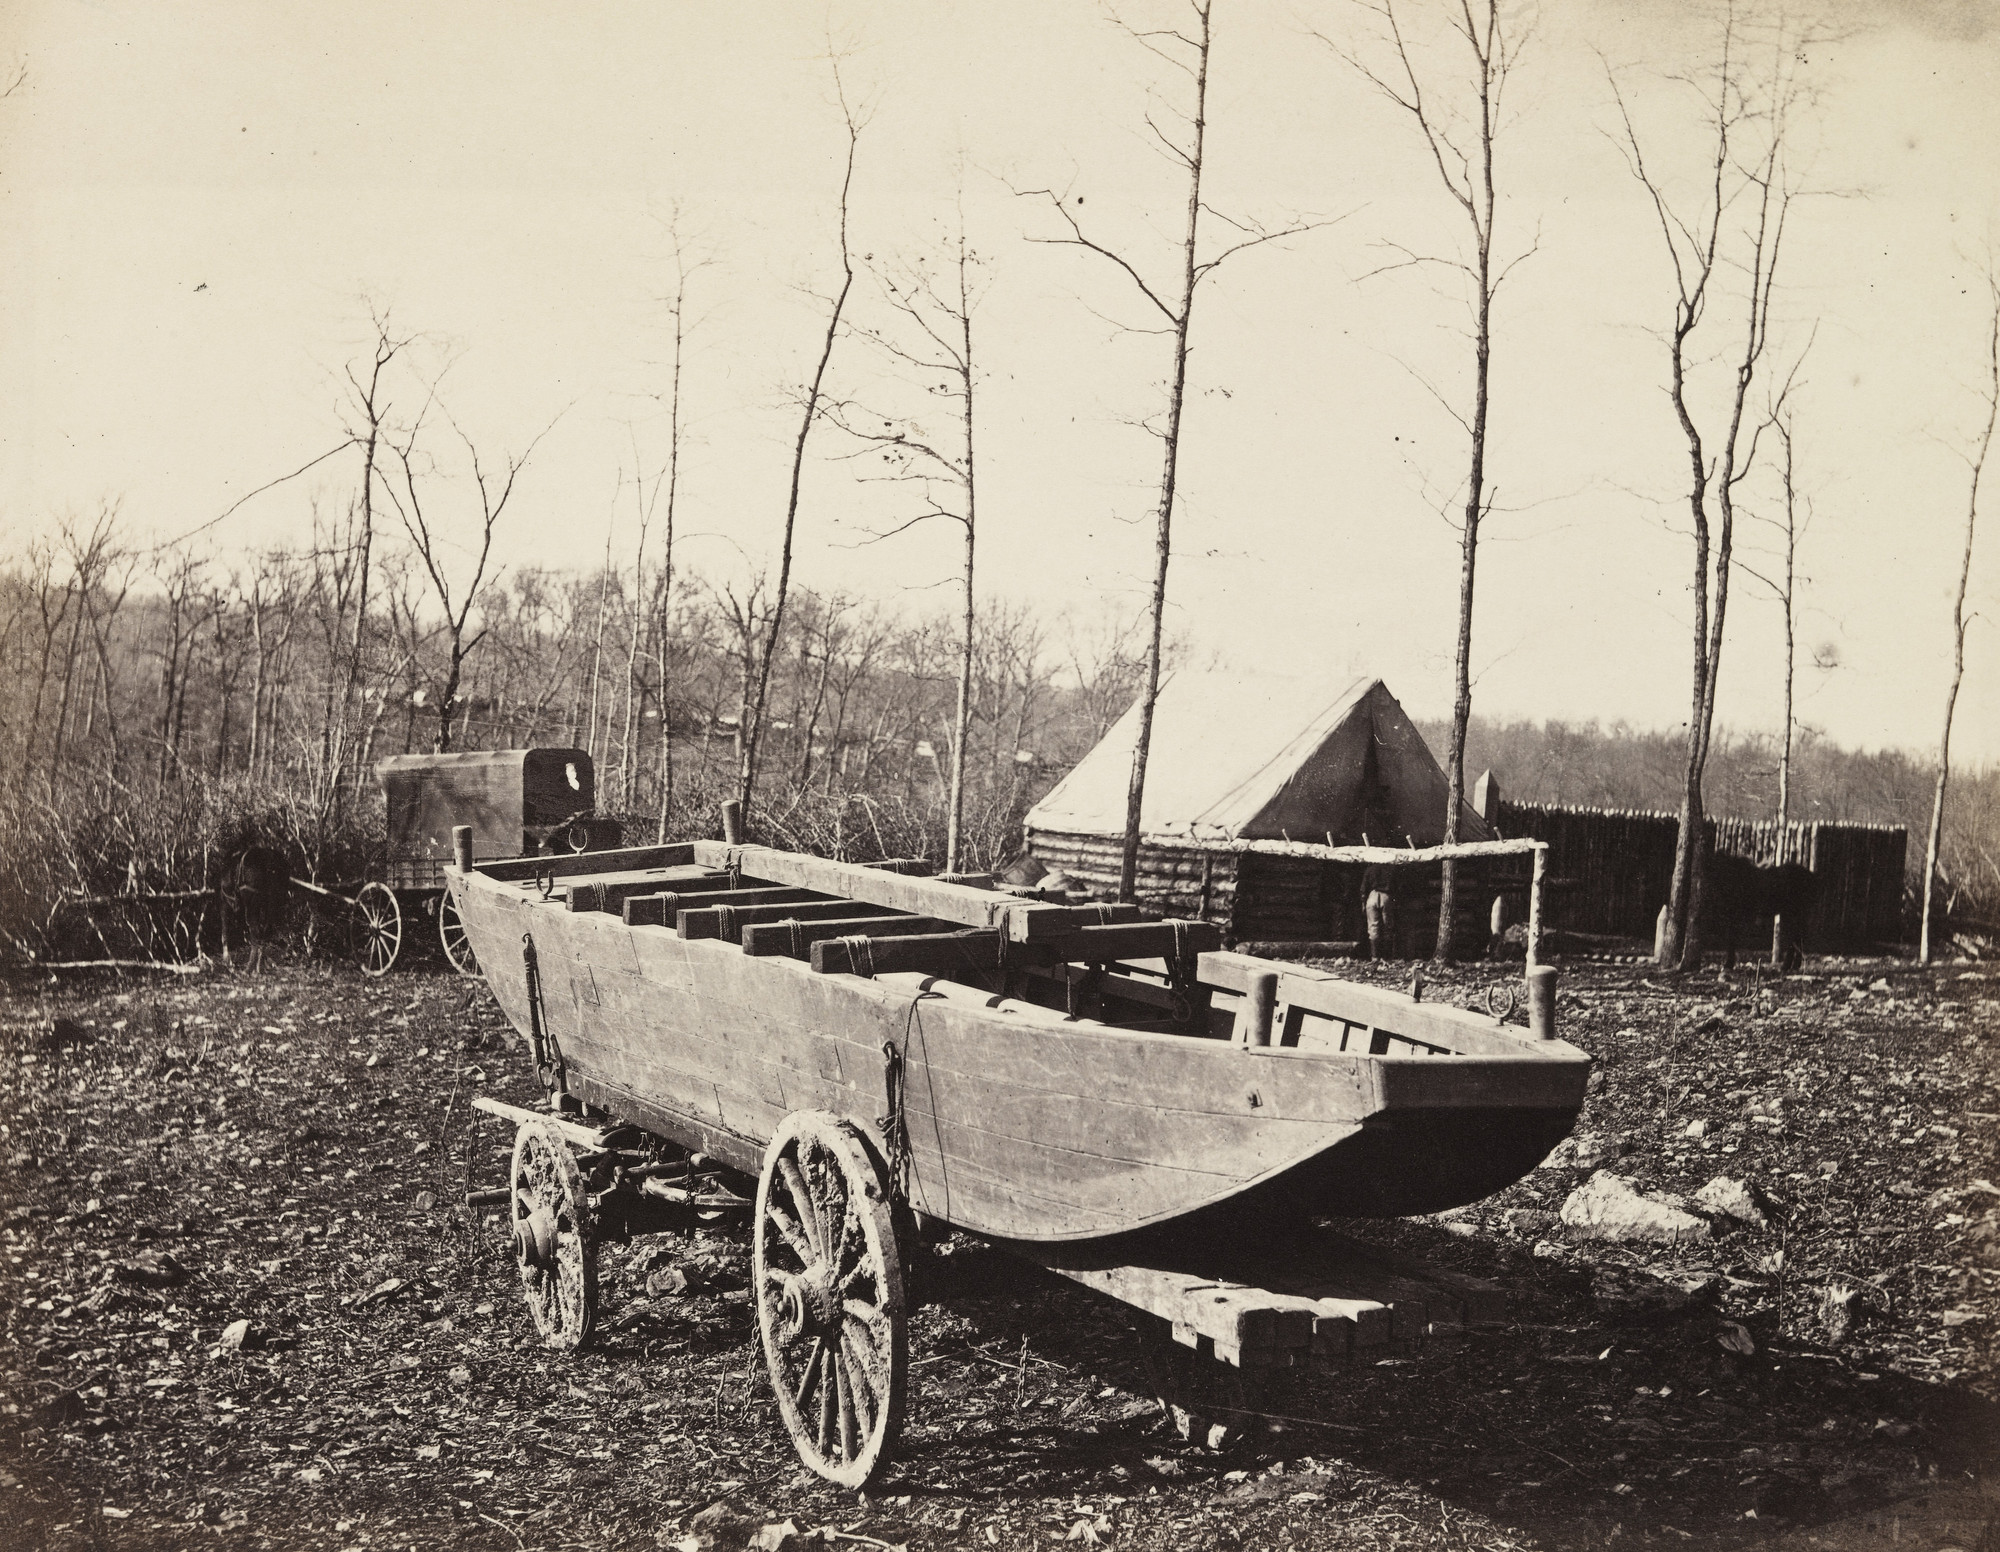 Alexander Gardner, Timothy O'Sullivan. Pontoon Boat, Brandy Station, Virginia. February 1864